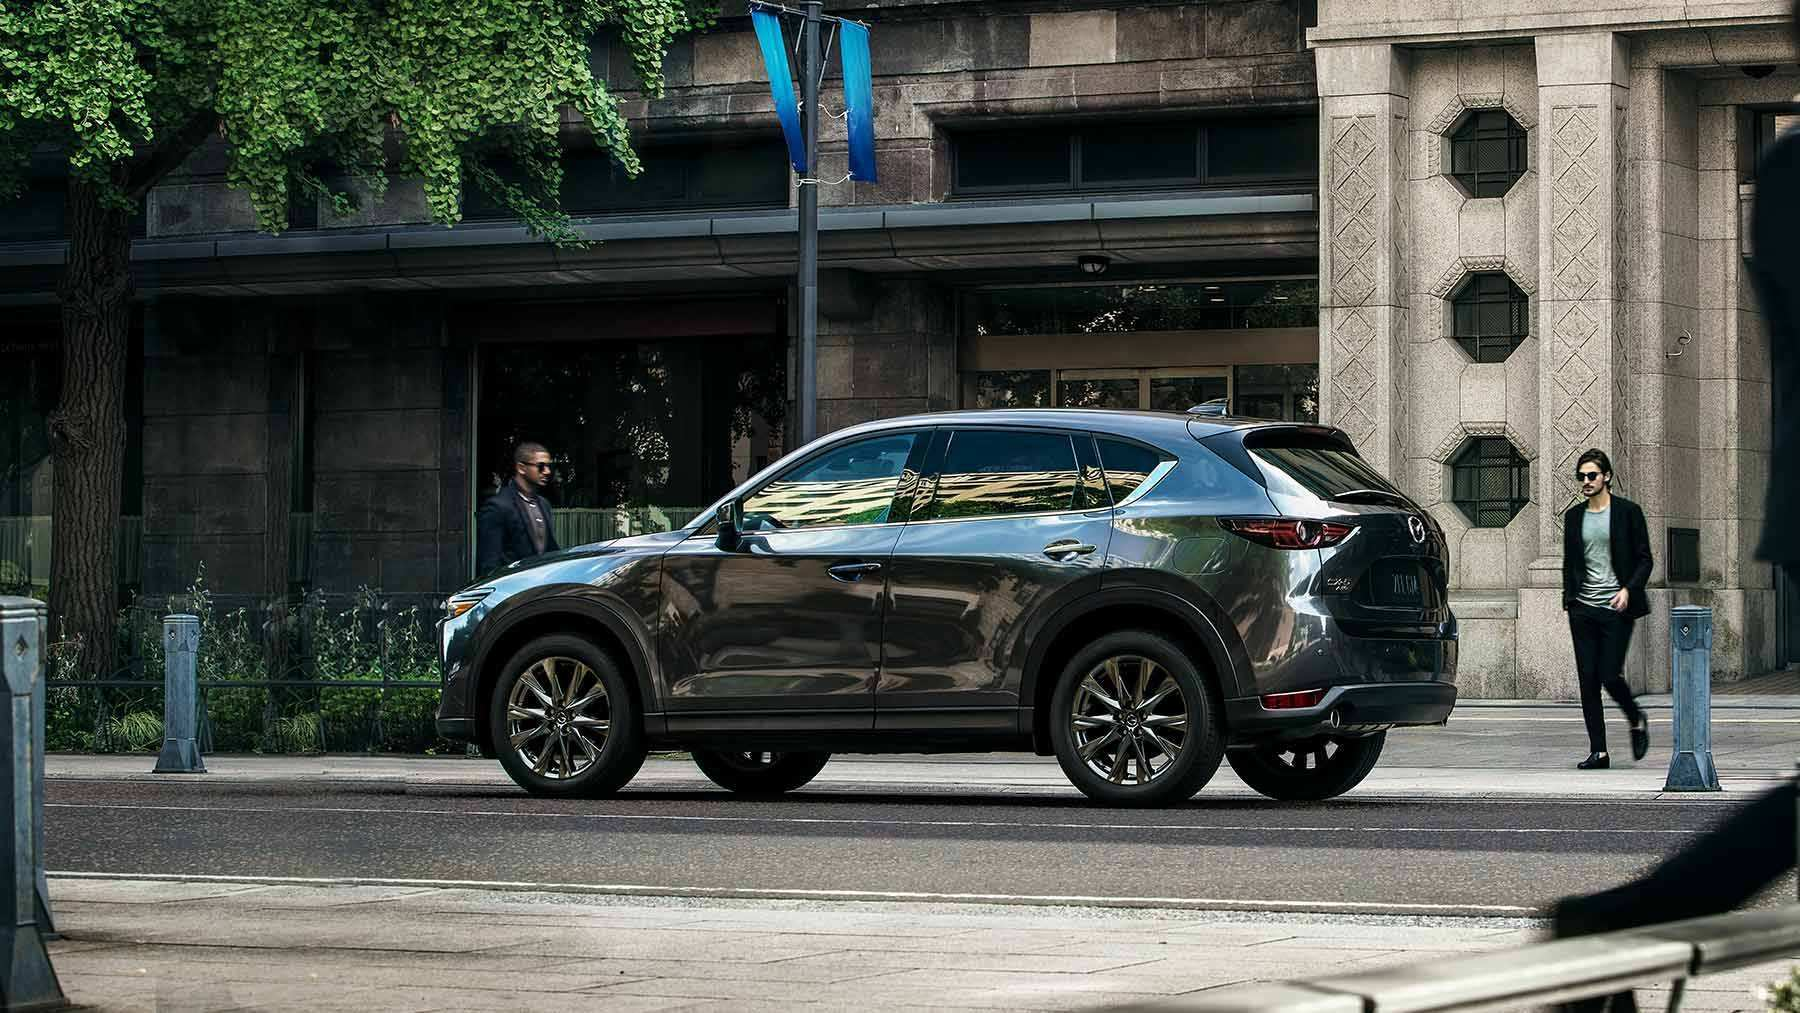 99 Best Review When Will The 2020 Mazda Cx 5 Be Available Speed Test with When Will The 2020 Mazda Cx 5 Be Available